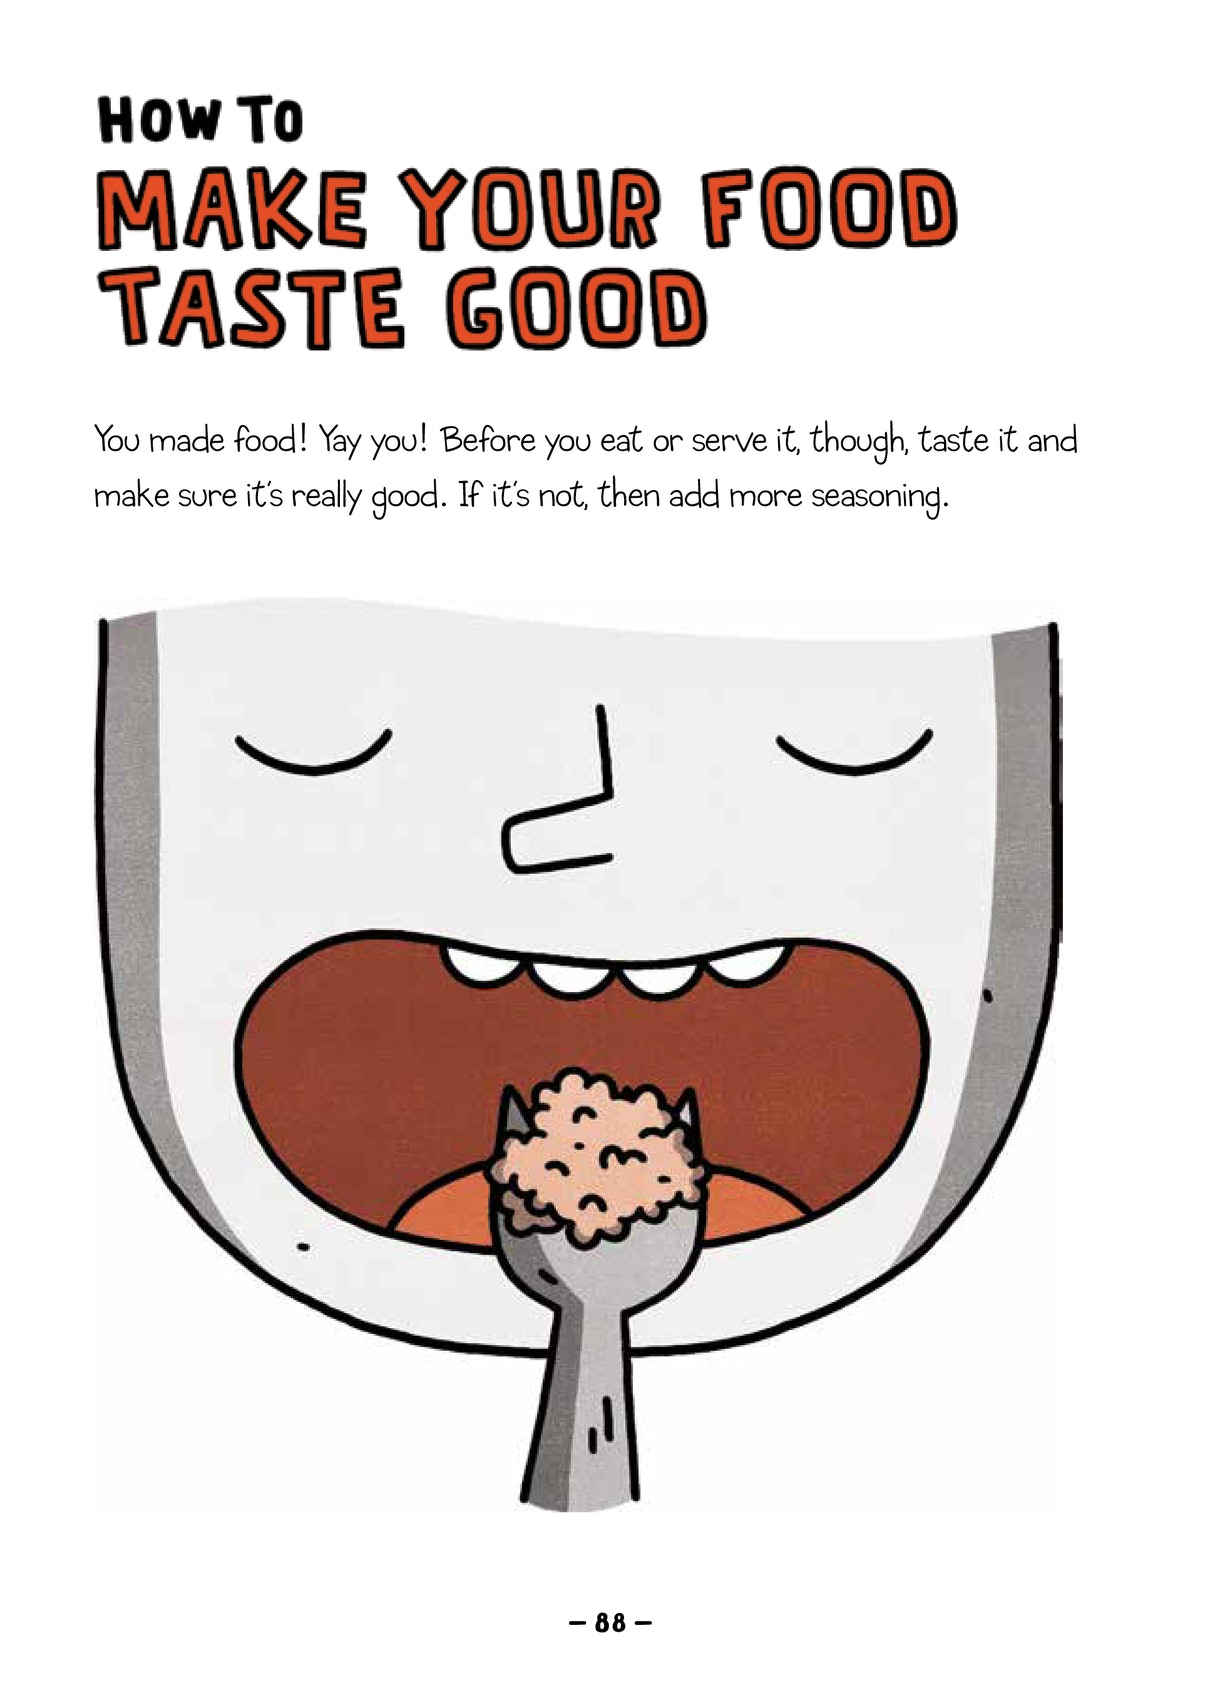 Text headline: How to make your food taste good. Caption: You made food! Yay you! Before you eat or serve it, though, taste it and make sure it's good. If it's not, then add more seasoning. Illustration of a mouth opening to take in a forkful of food.